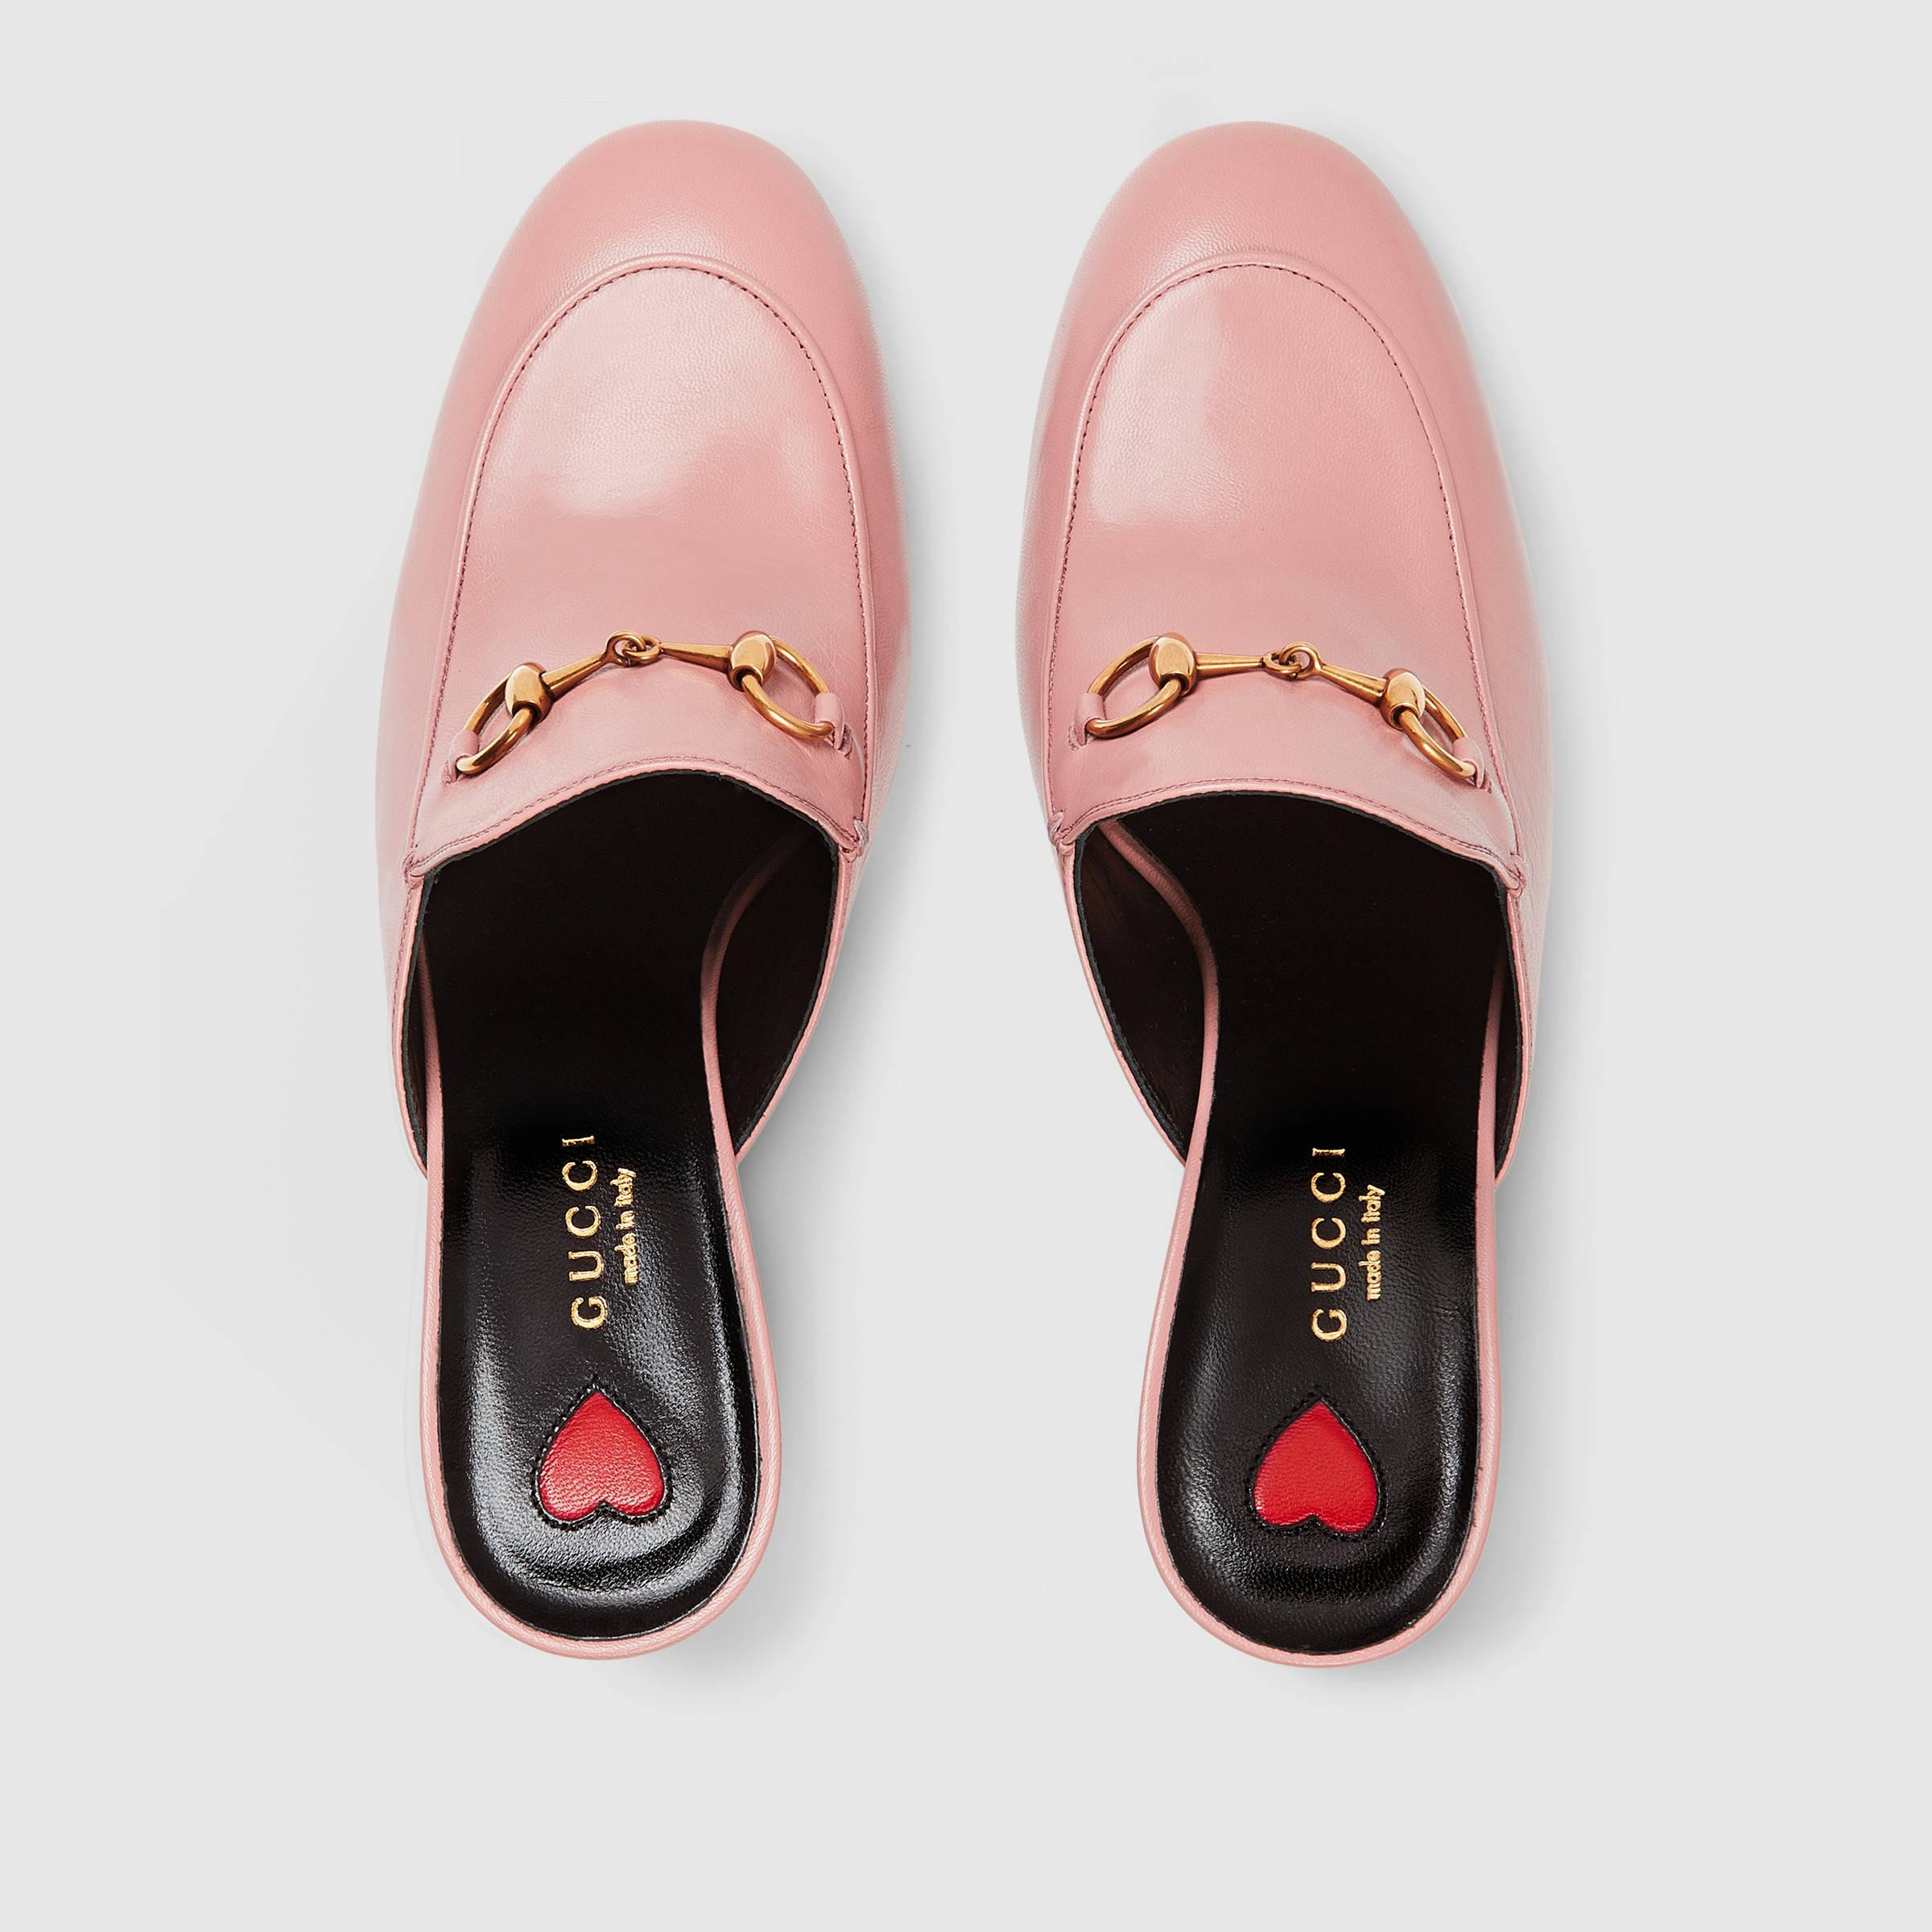 e8e2c835626 Lyst - Gucci Princetown Leather Mules in Pink